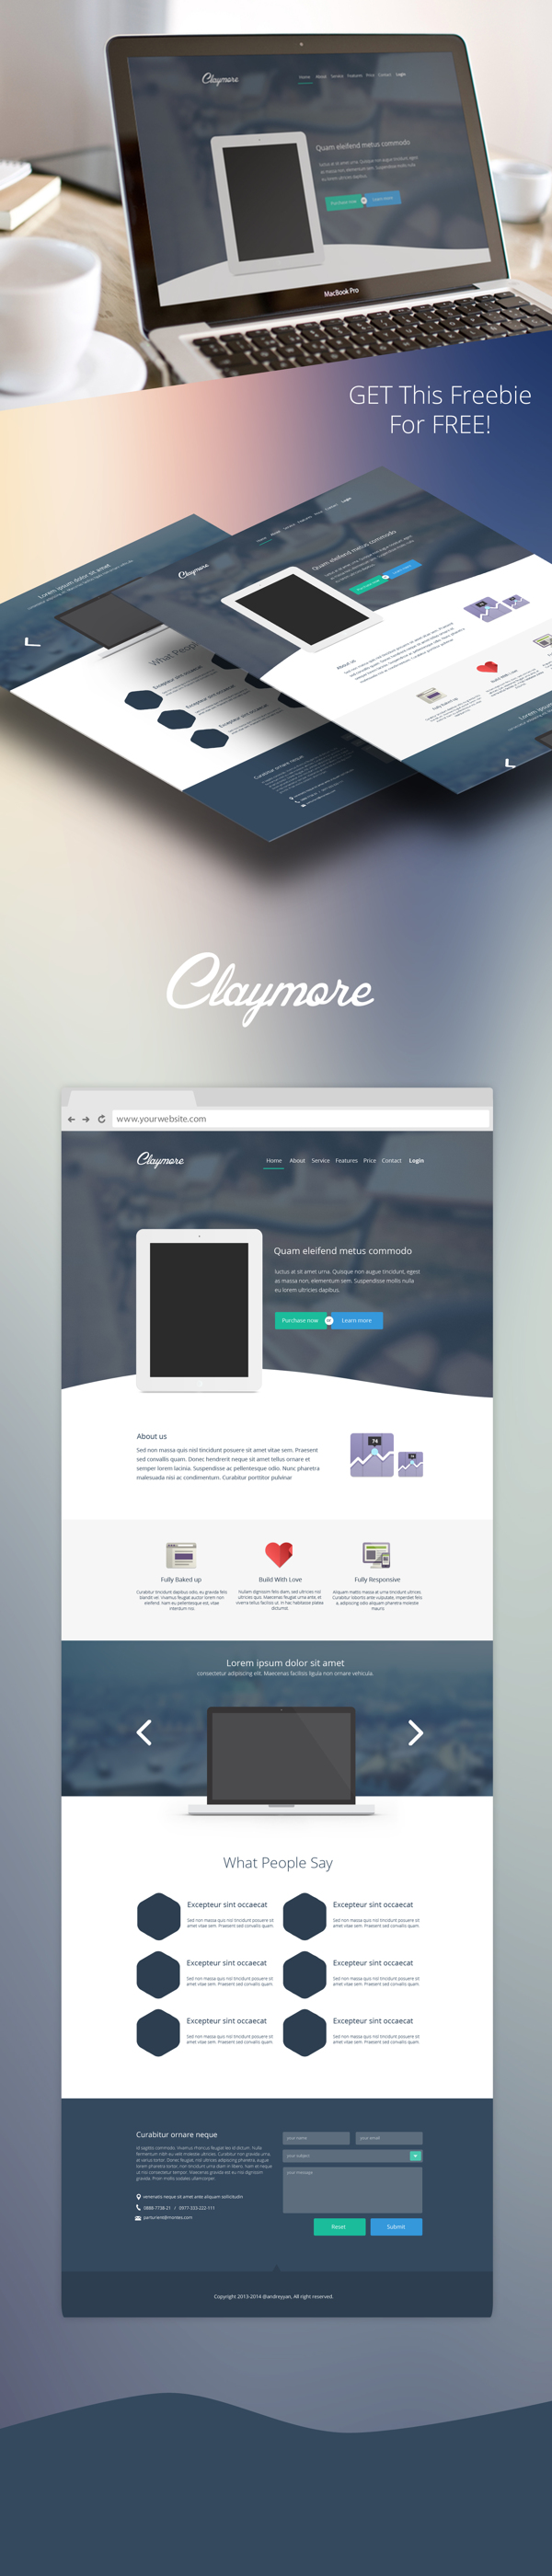 Claymore-App-Landing-Page